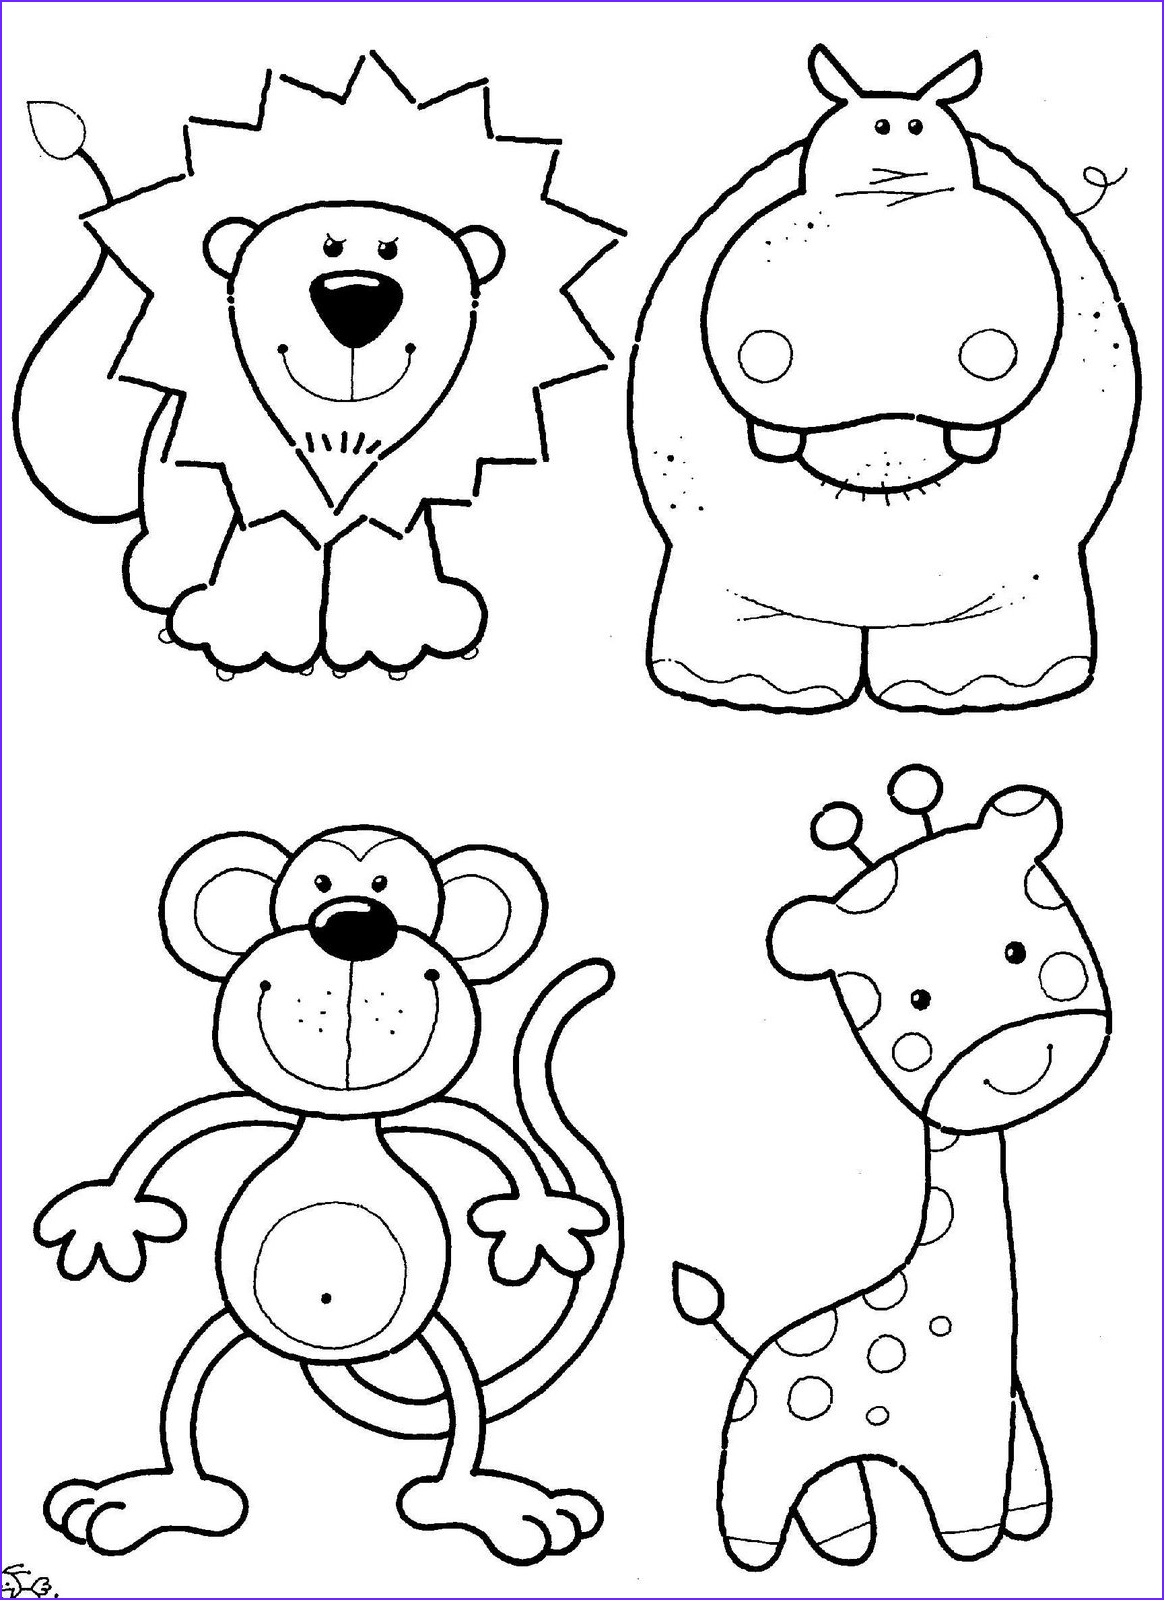 Animal Coloring Pages Printable Best Of Gallery Coloring Ville